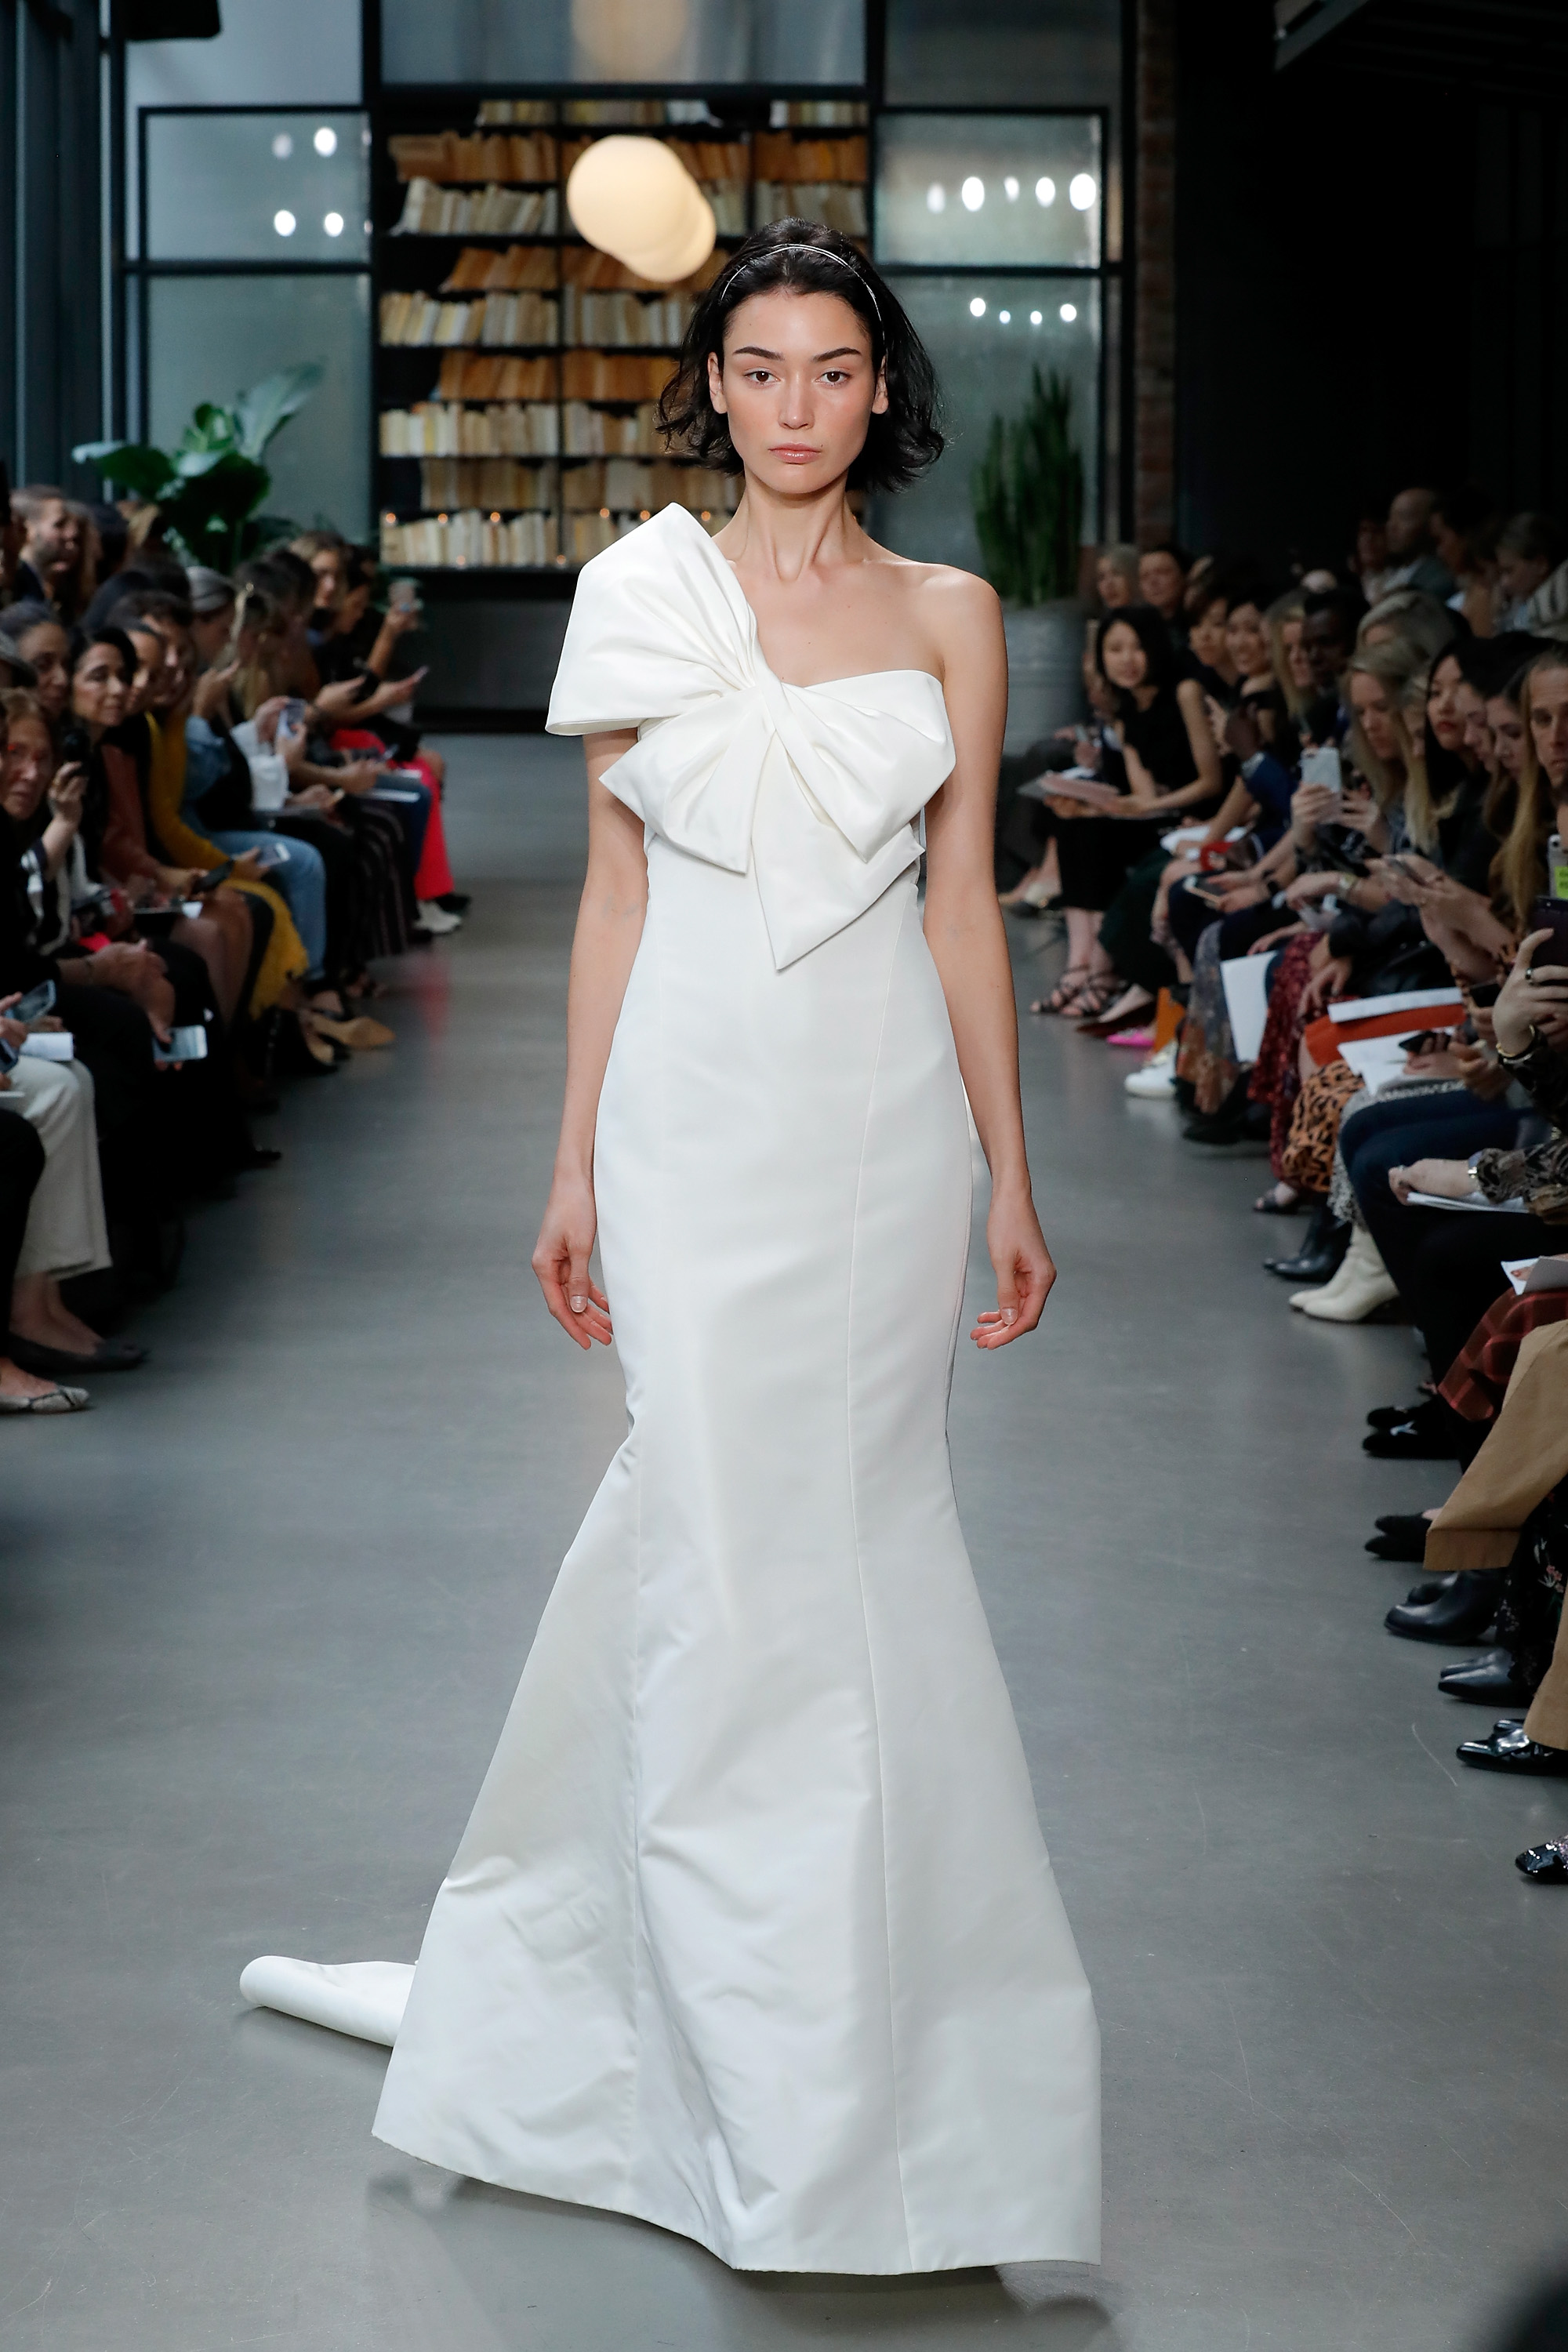 Wedding Dress Bridal Gown Styles With Pretty Bows Inside